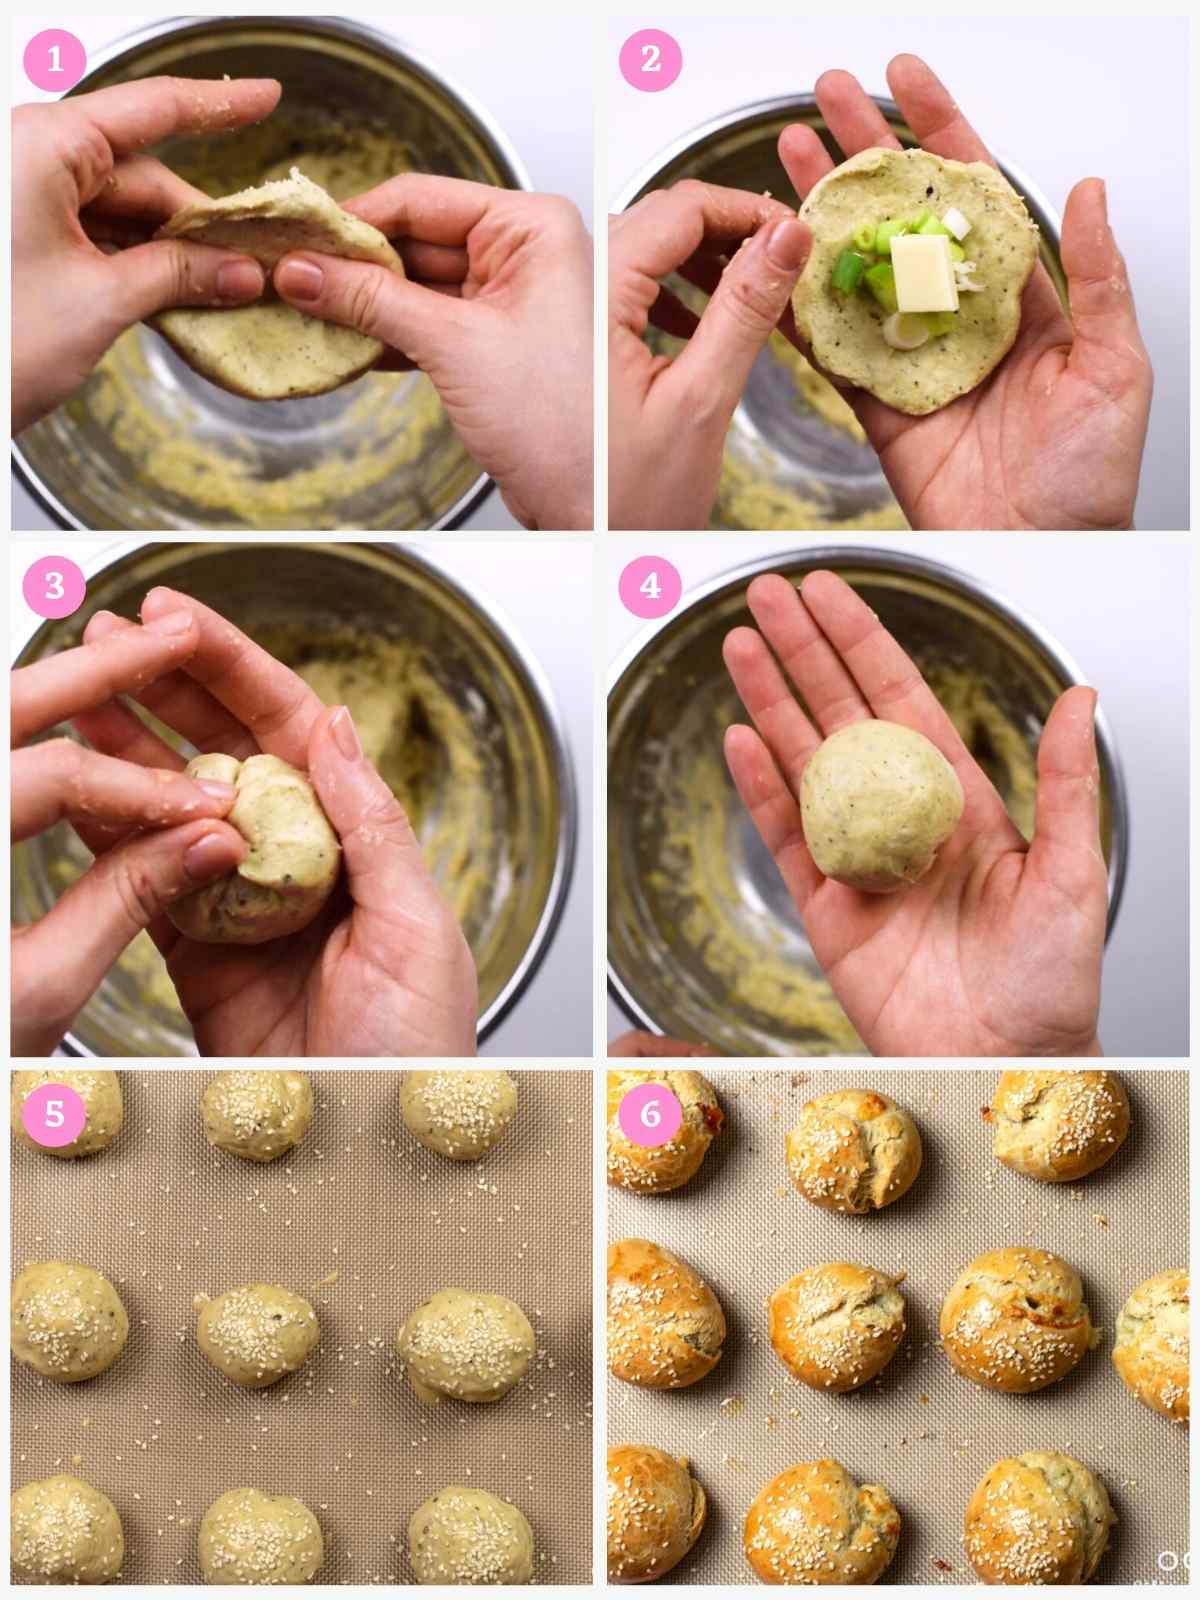 Collage of 6 images showing how to form the cheese buns